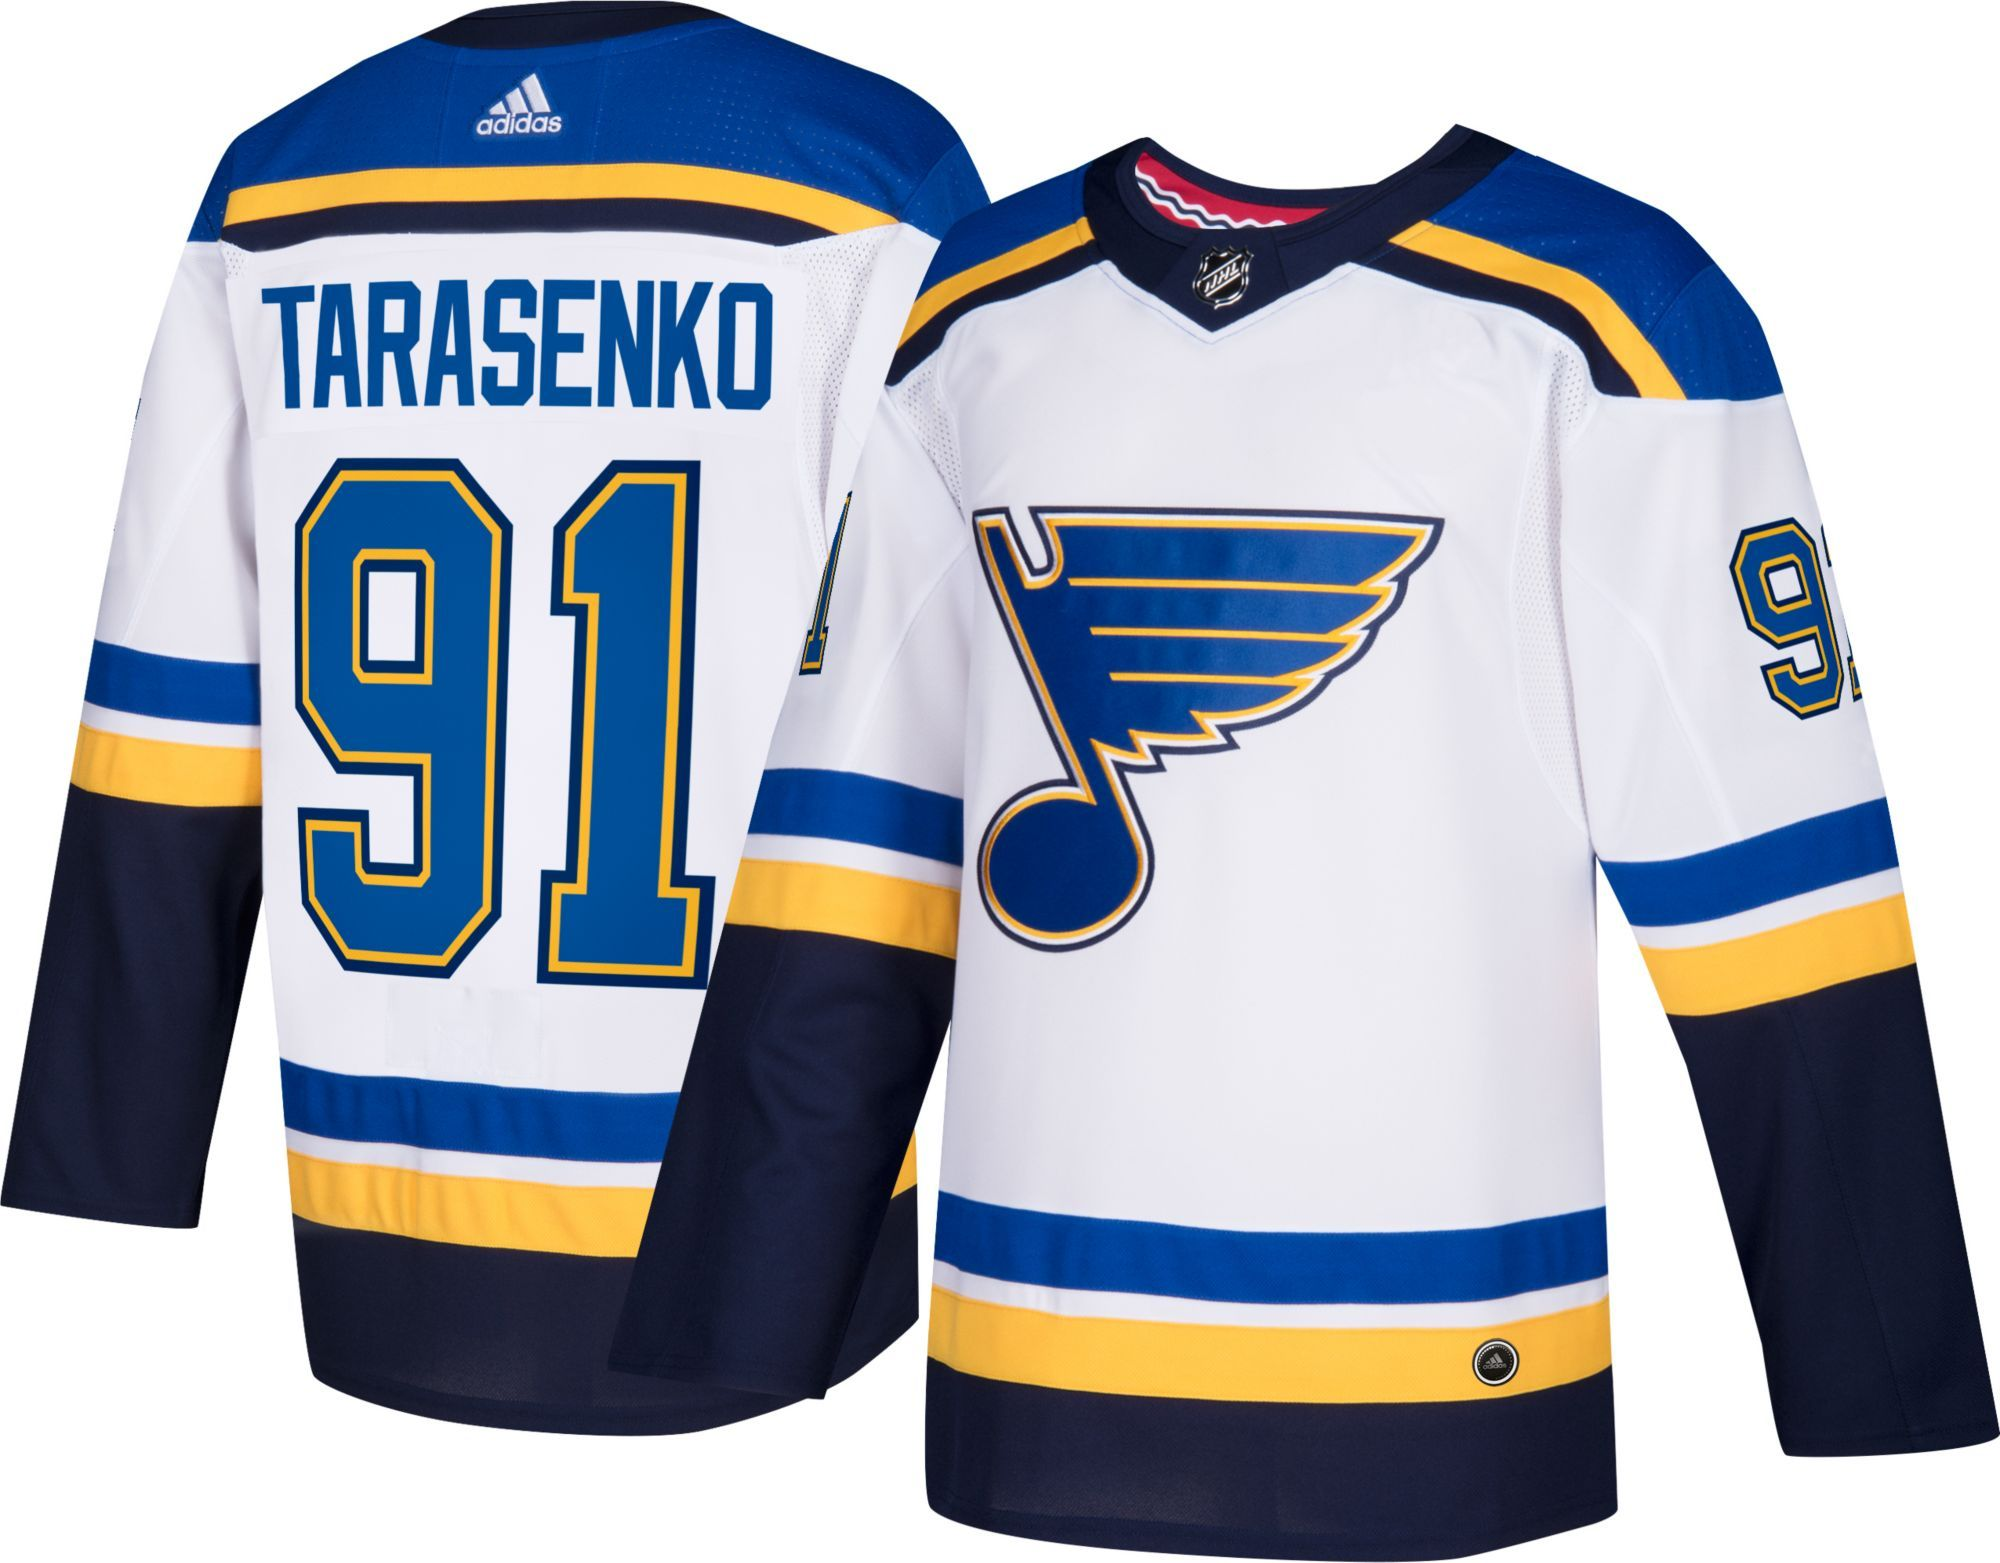 hot sale online 5ac25 0868d adidas Men's St. Louis Blues Vladimir Tarasenko #91 ...